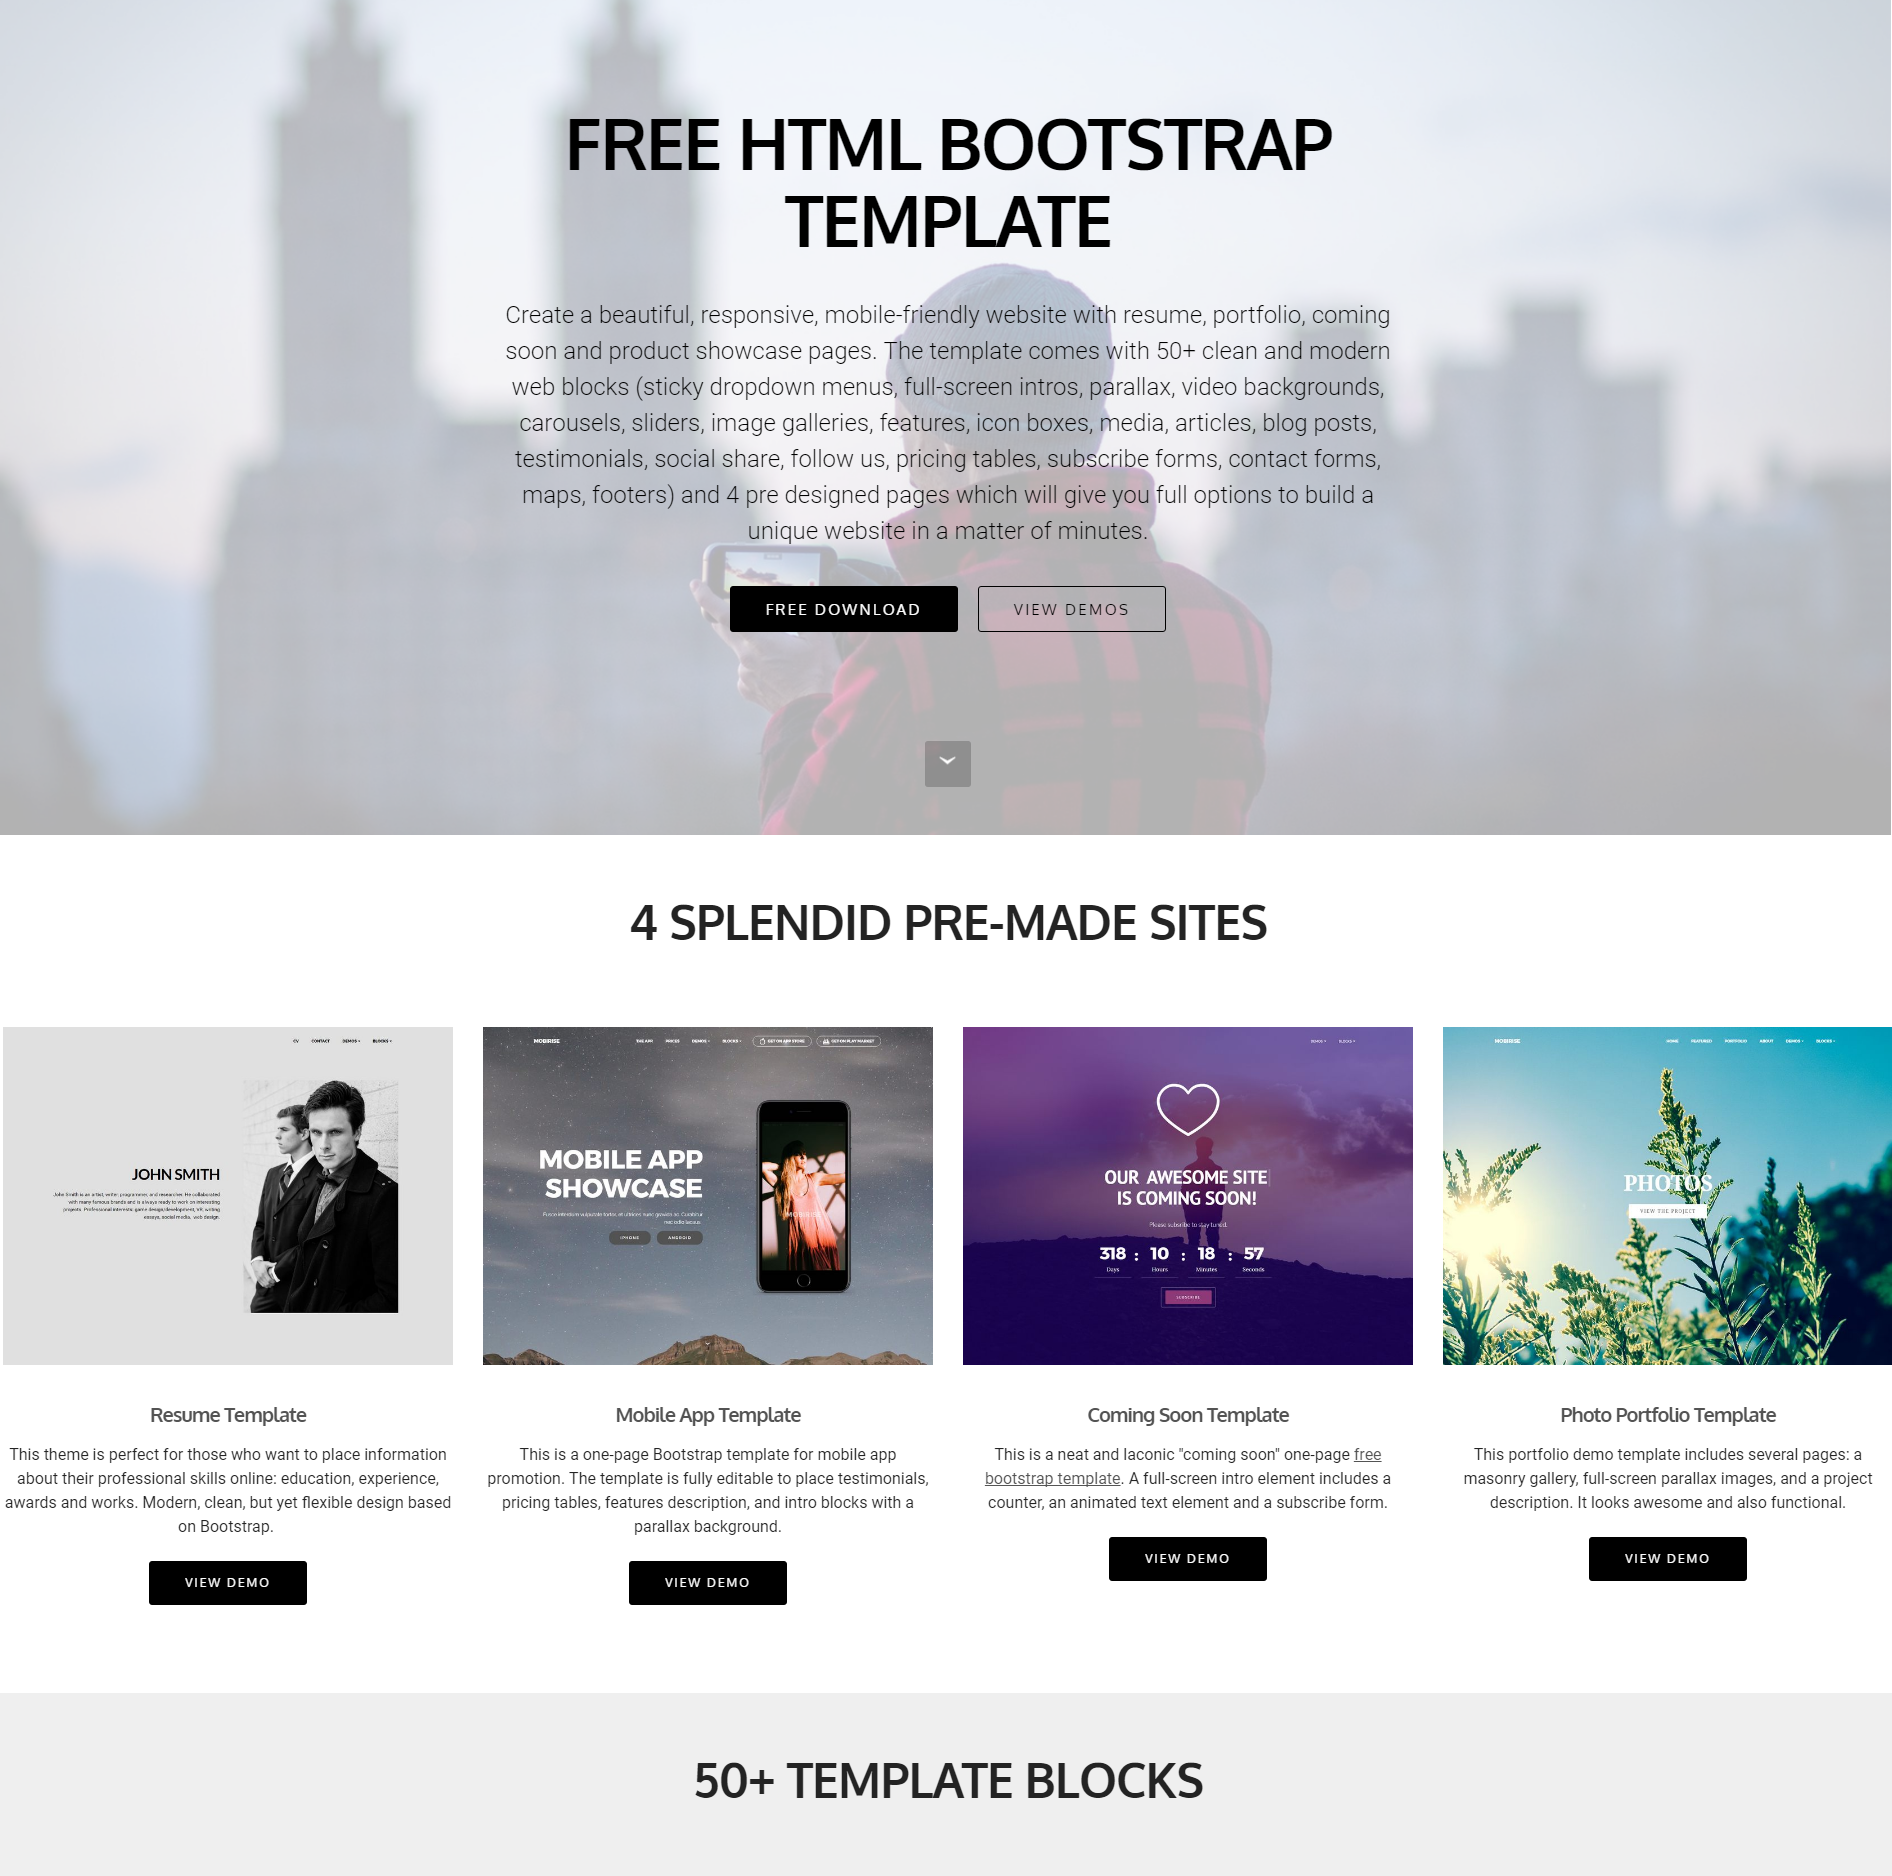 HTML Bootstrap 4 Blocks Templates